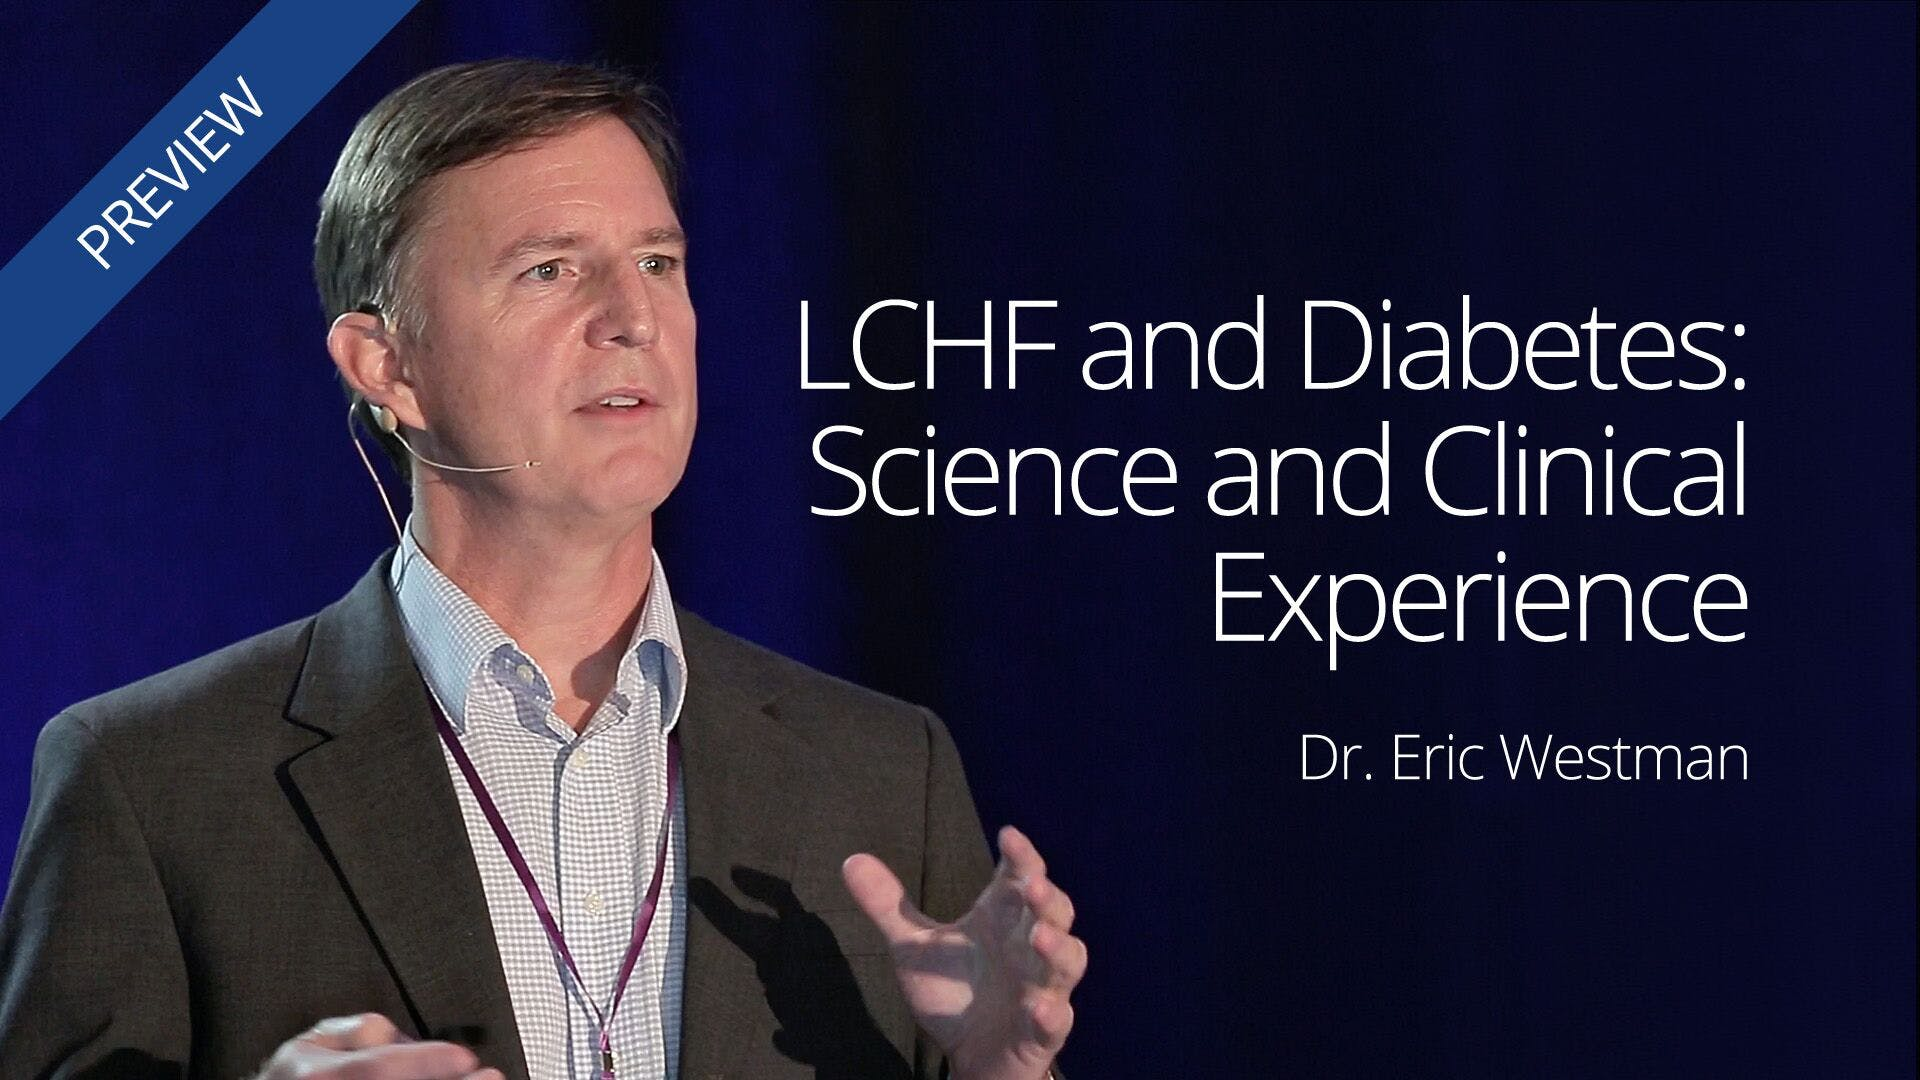 <strong>LCHF</strong> and <strong>Diabetes</strong>: Science and Clinical Experience